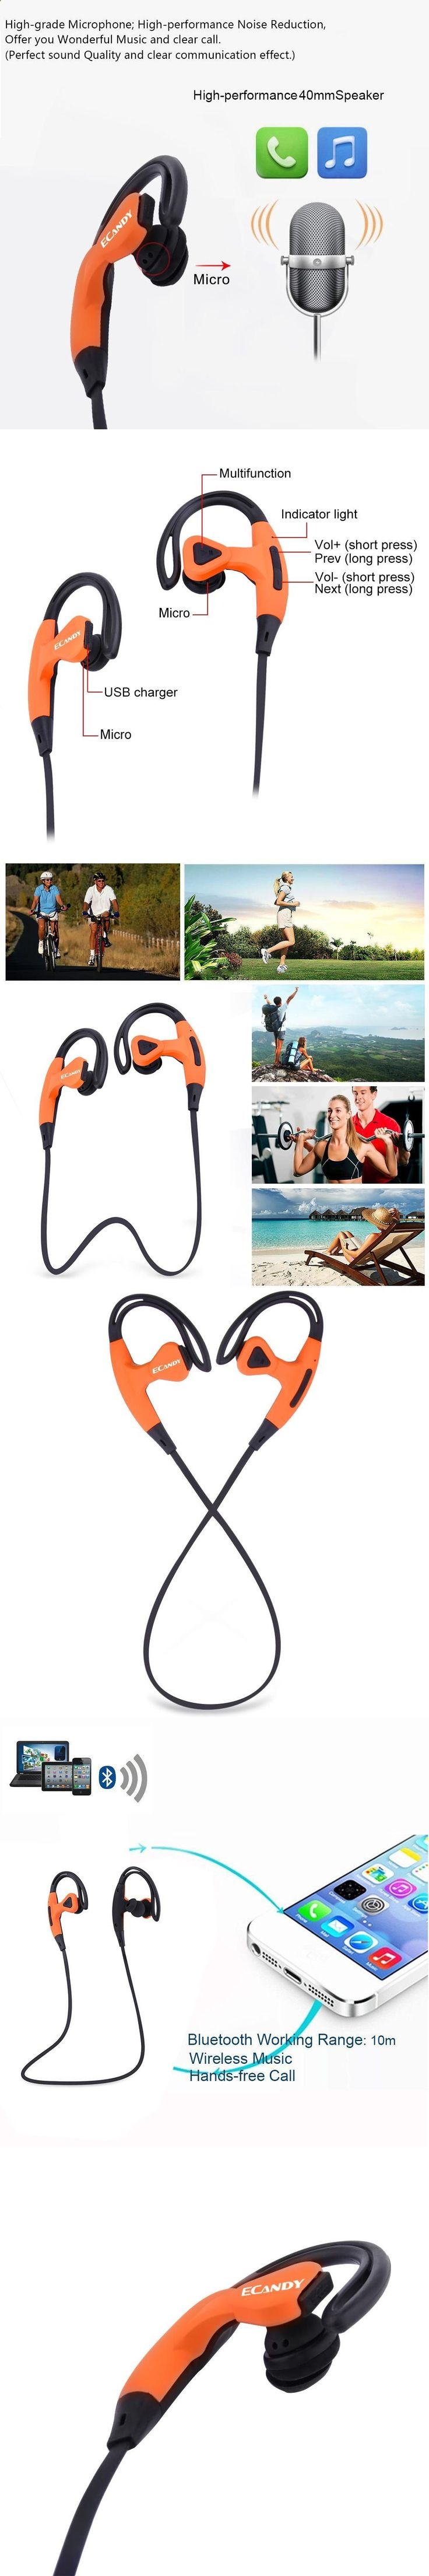 Sports Headphones - Ecandy Bluetooth Earphone Music Stereo Earbuds Wireless Sports Headphones Handsfree fones de ouvido with Mic for Smartphones - If you usually go out to run, walk or any other sport in which you usually carry music to accompany or motivate you, we have selected 13 models of sports headphones that we consider among the best in the market for different aspects, from comfort to use to design, sound quality or value for money, so that you find variety and can adjust the ...